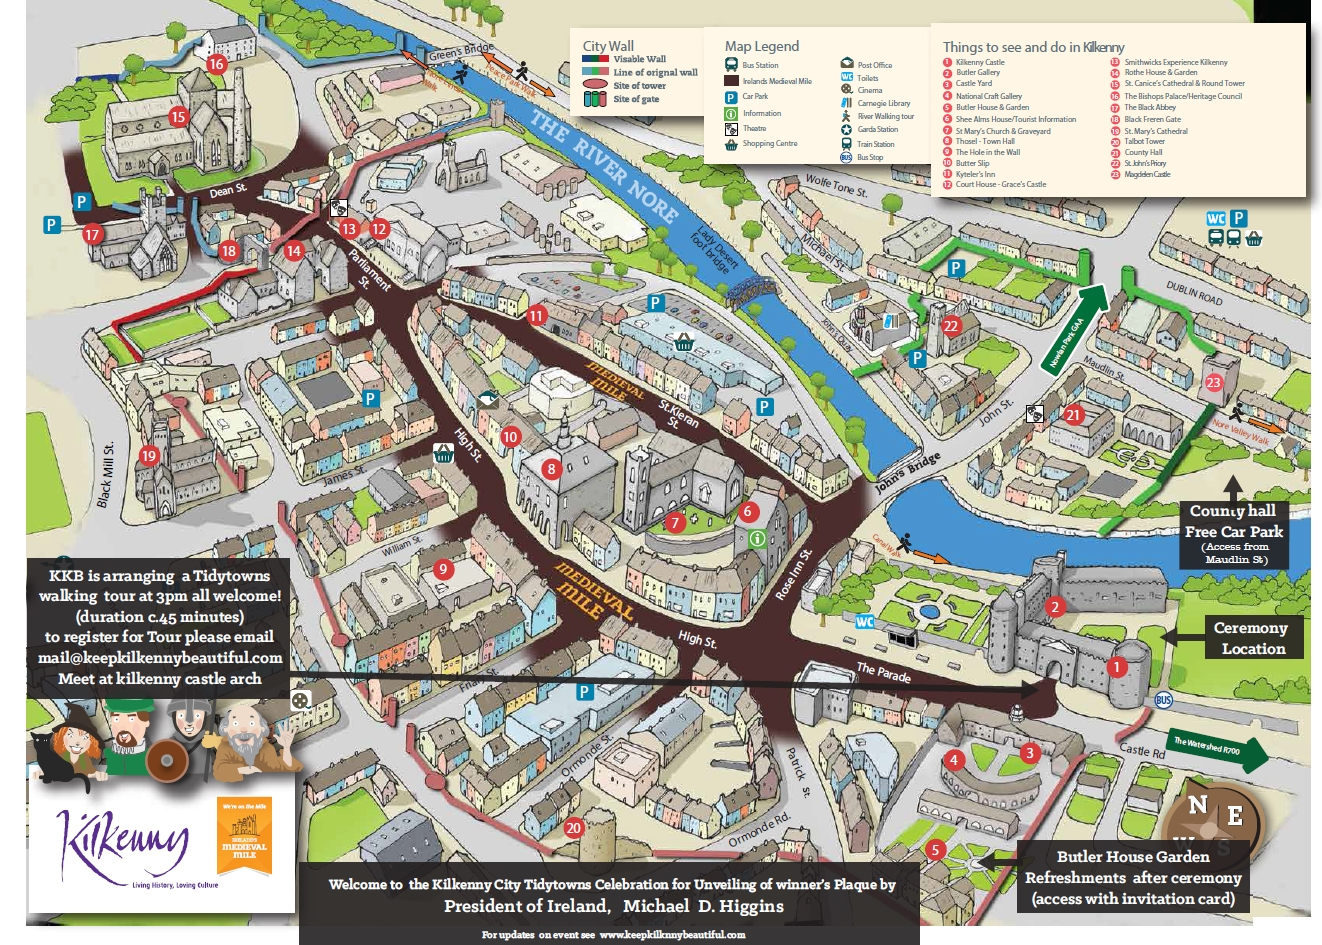 City plan showing location of presentation at Kilkenny Castle